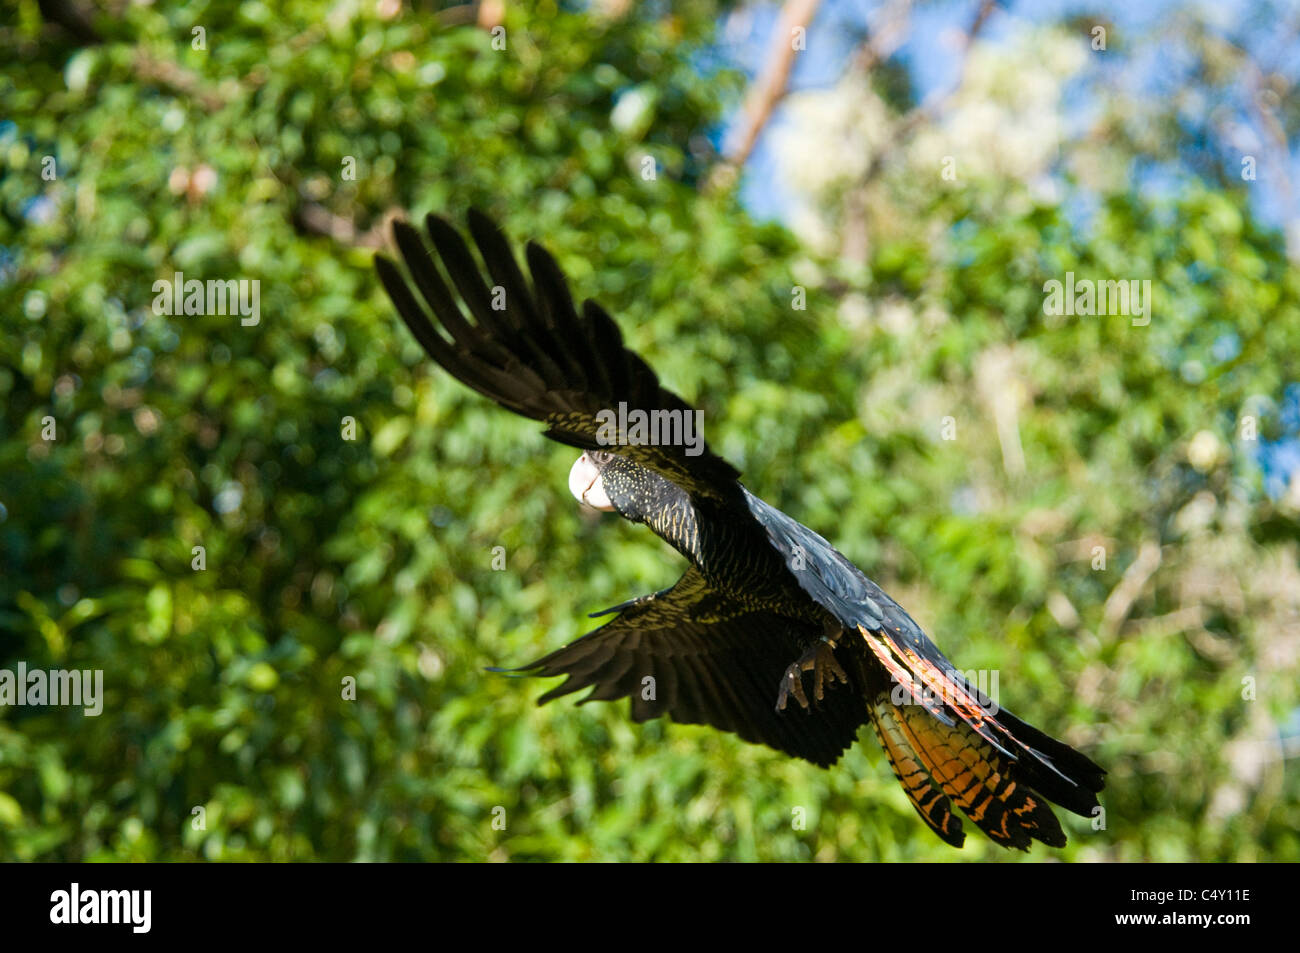 Red-tailed black cockatoo at the Cairns Tropical Zoo in Queensland Australia - Stock Image